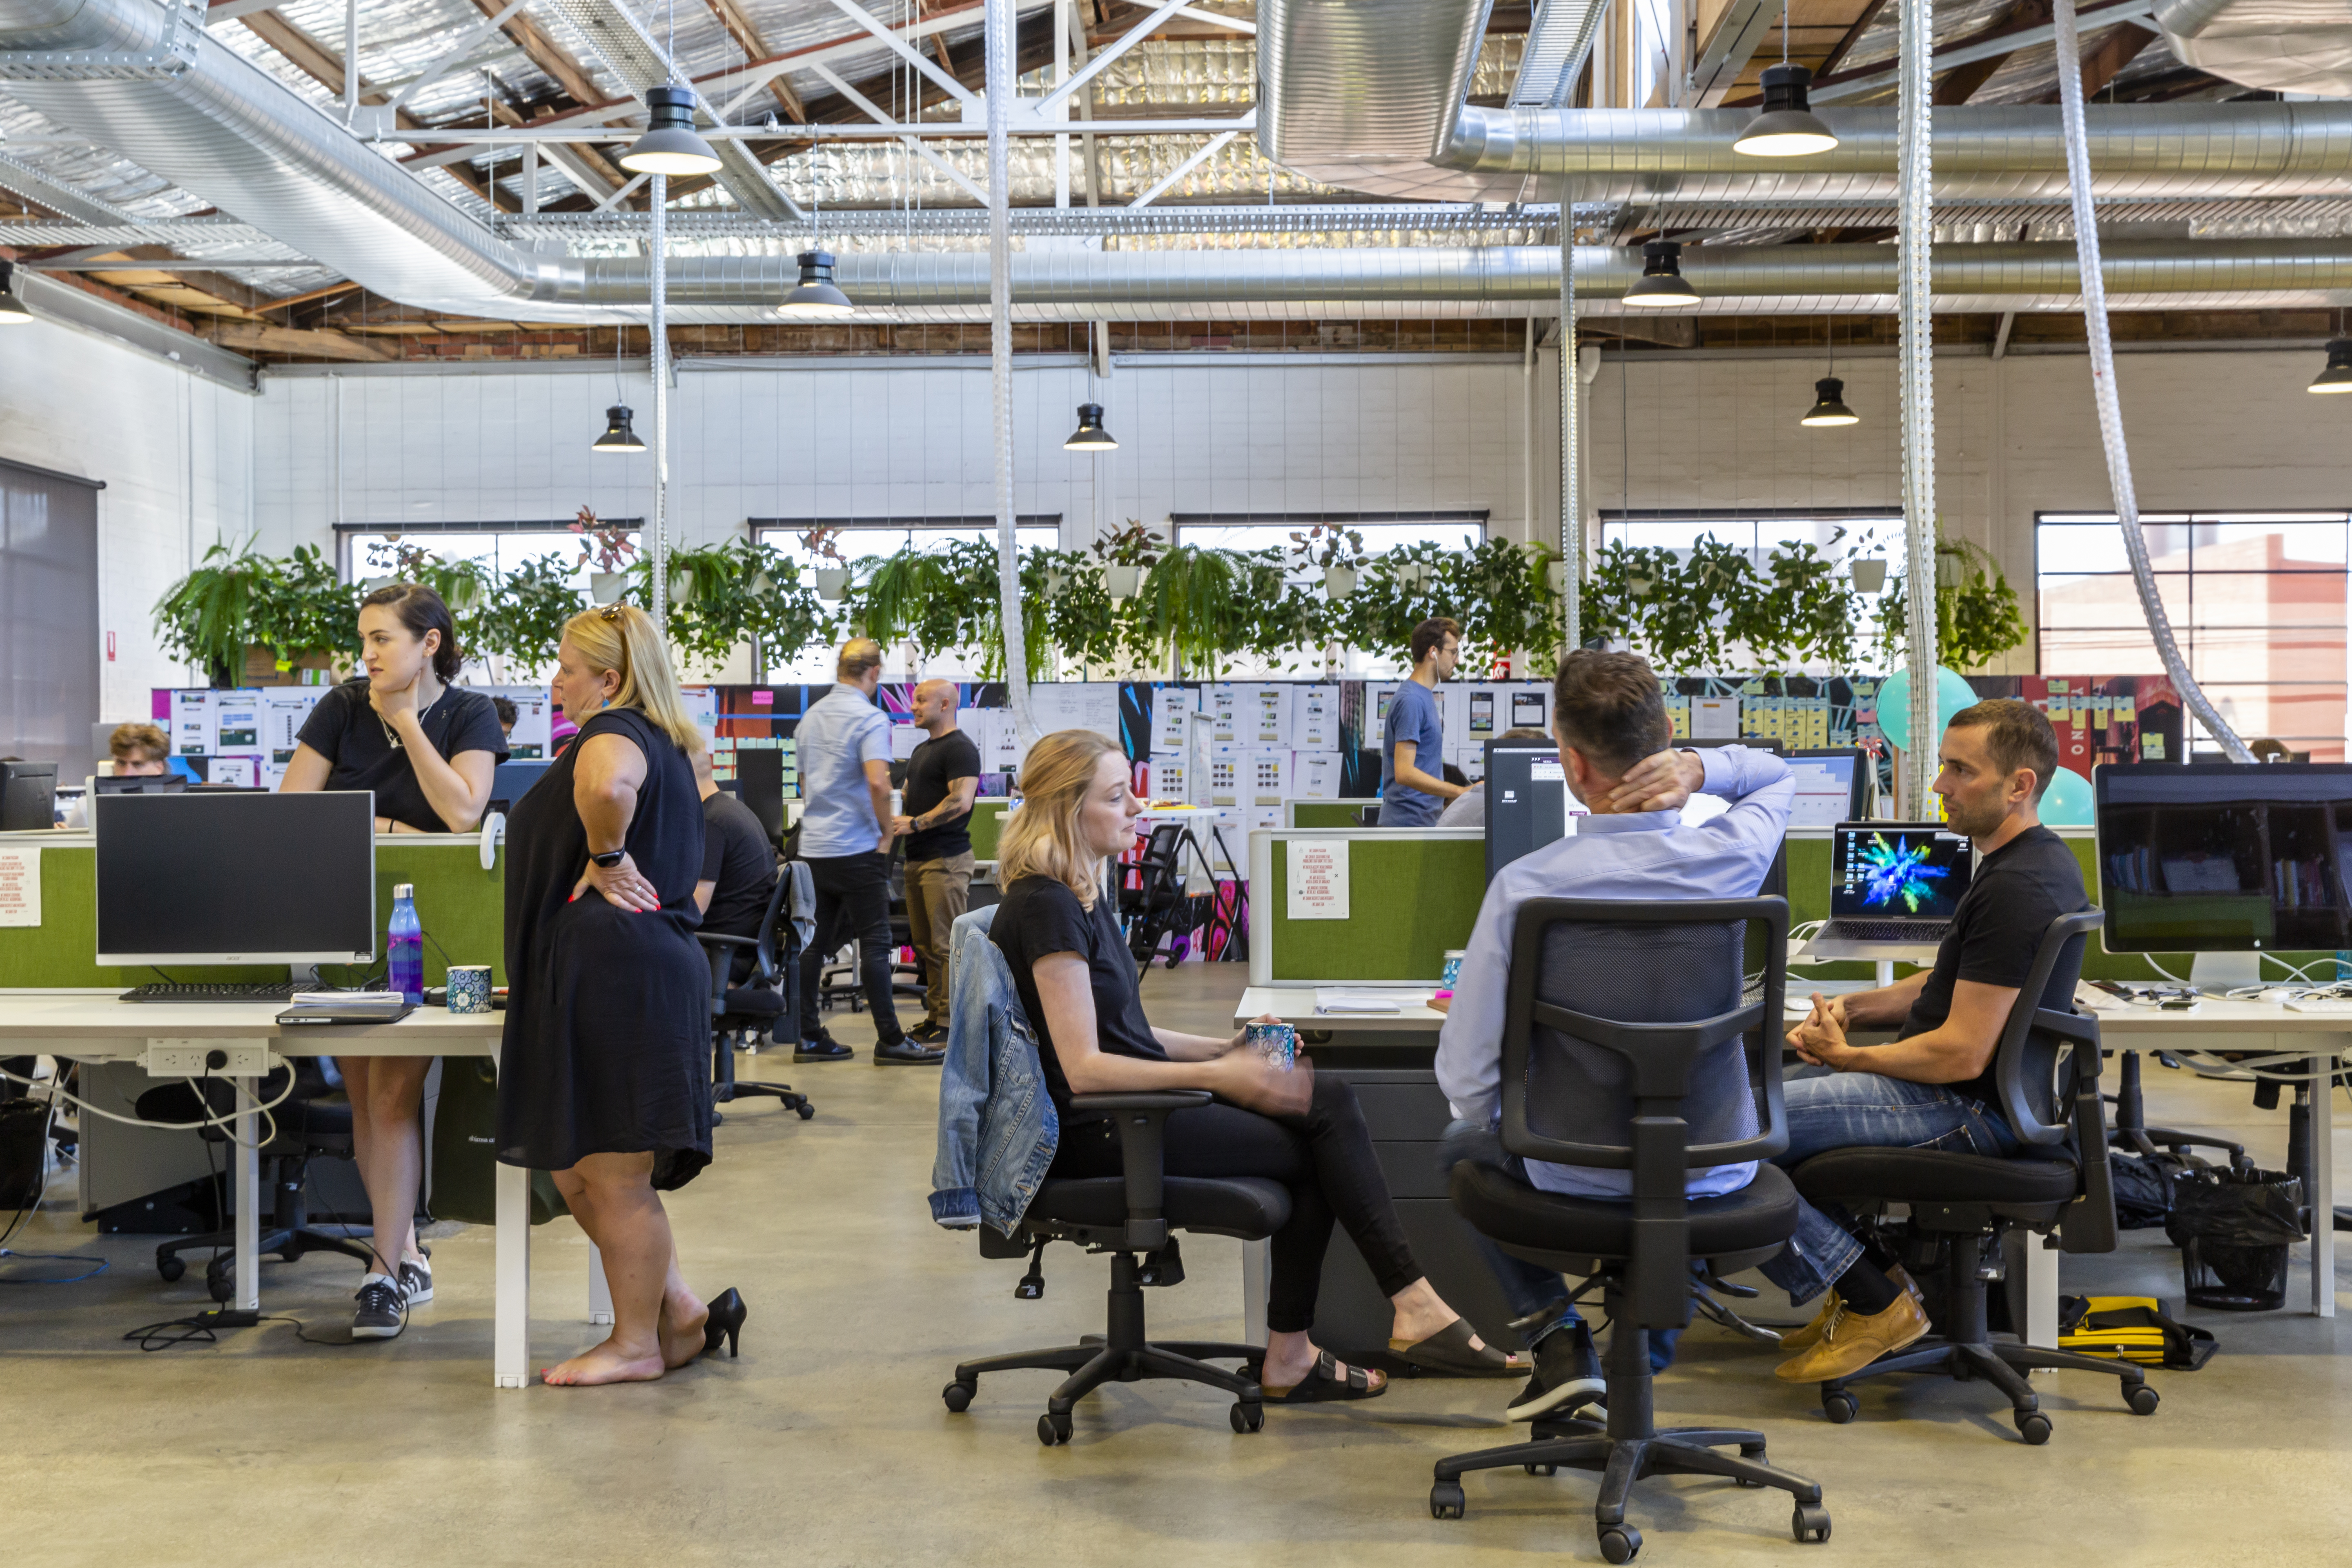 Office space with employees